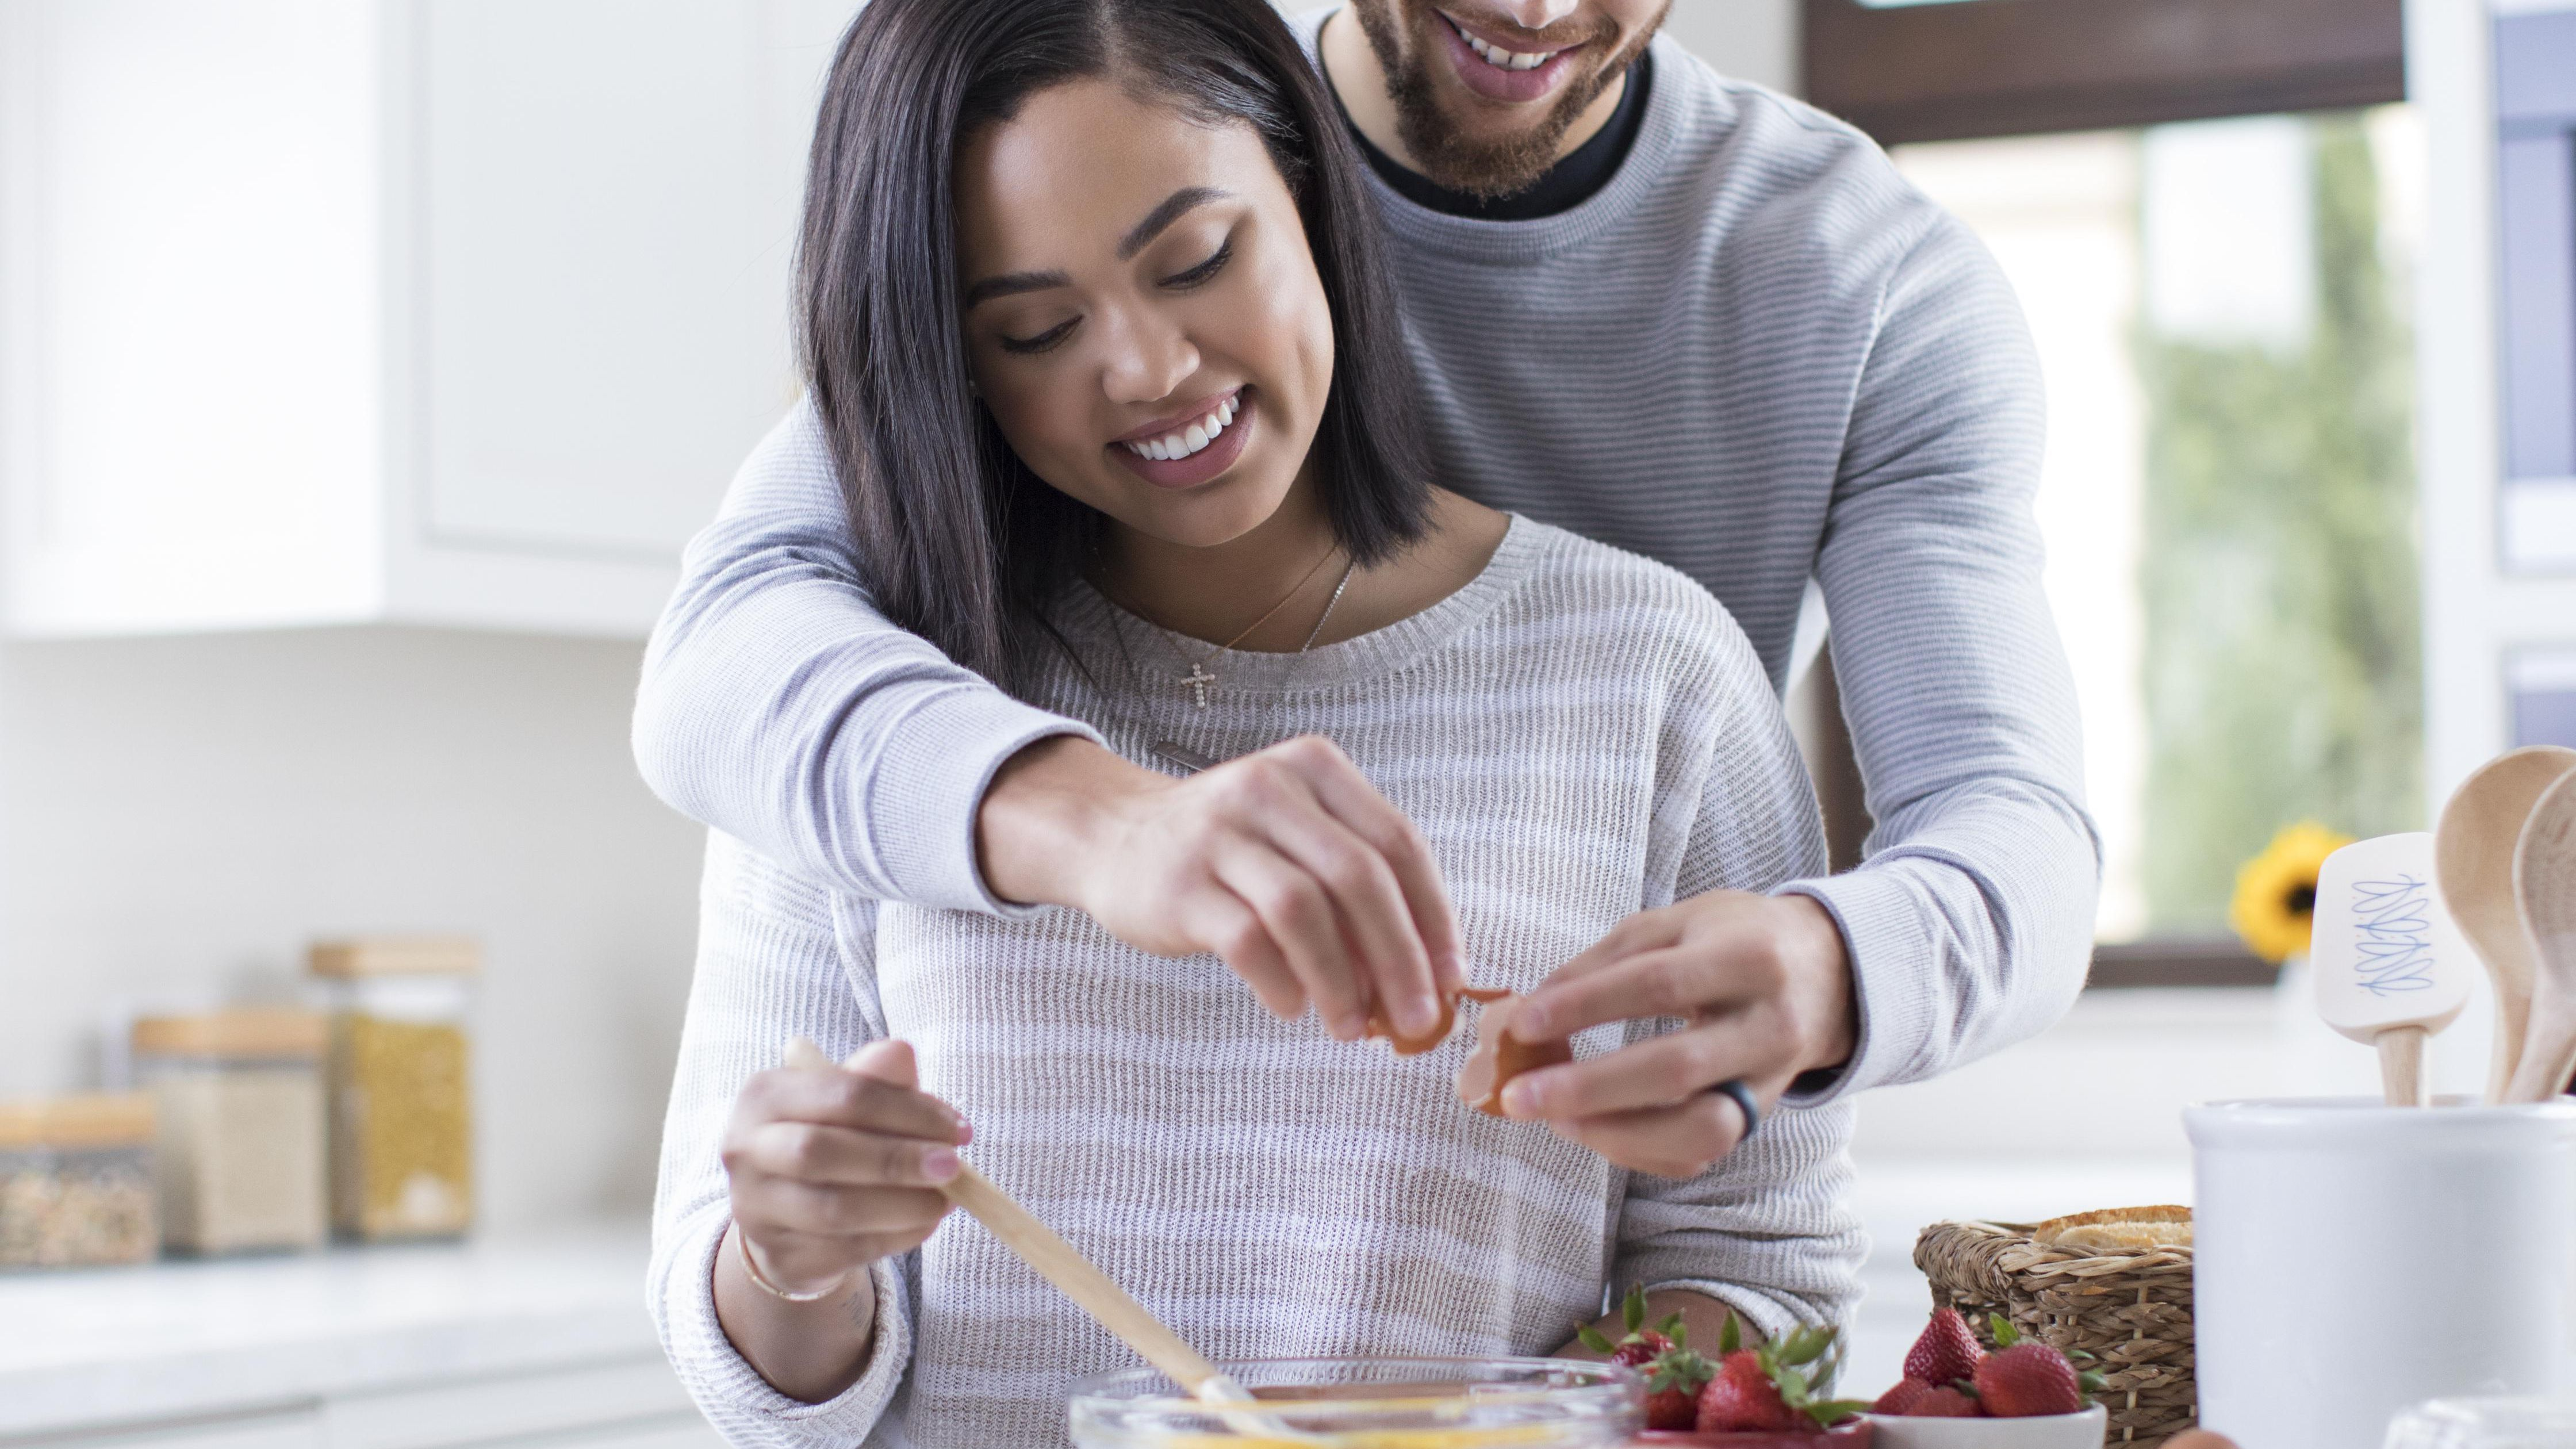 EXCLUSIVE: Ayesha Curry Dishes on the First Meal She Cooked for Steph Curry